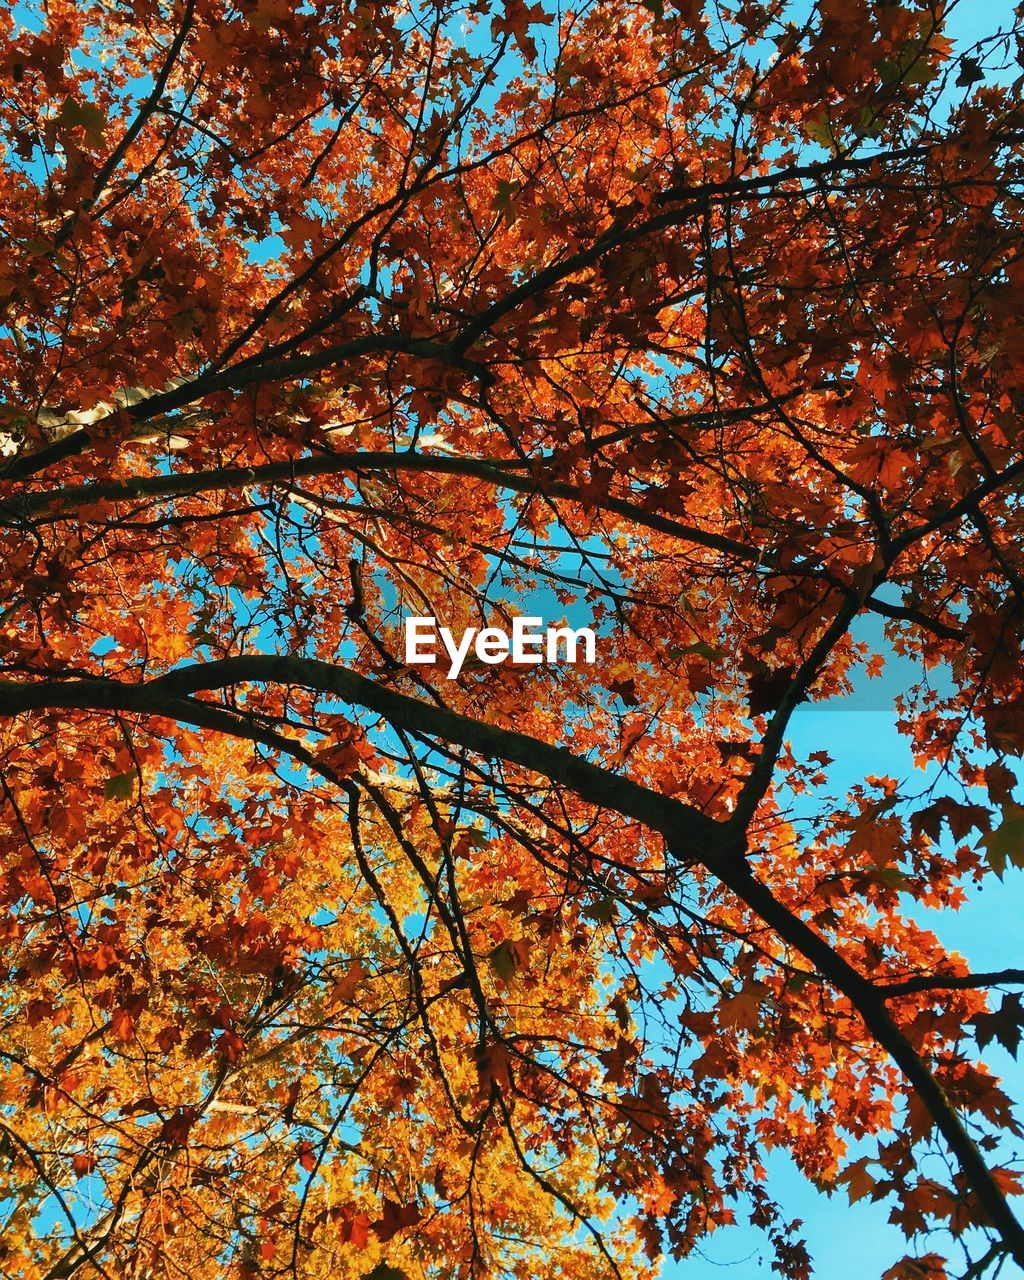 Low angle view of maple tree against sky during autumn